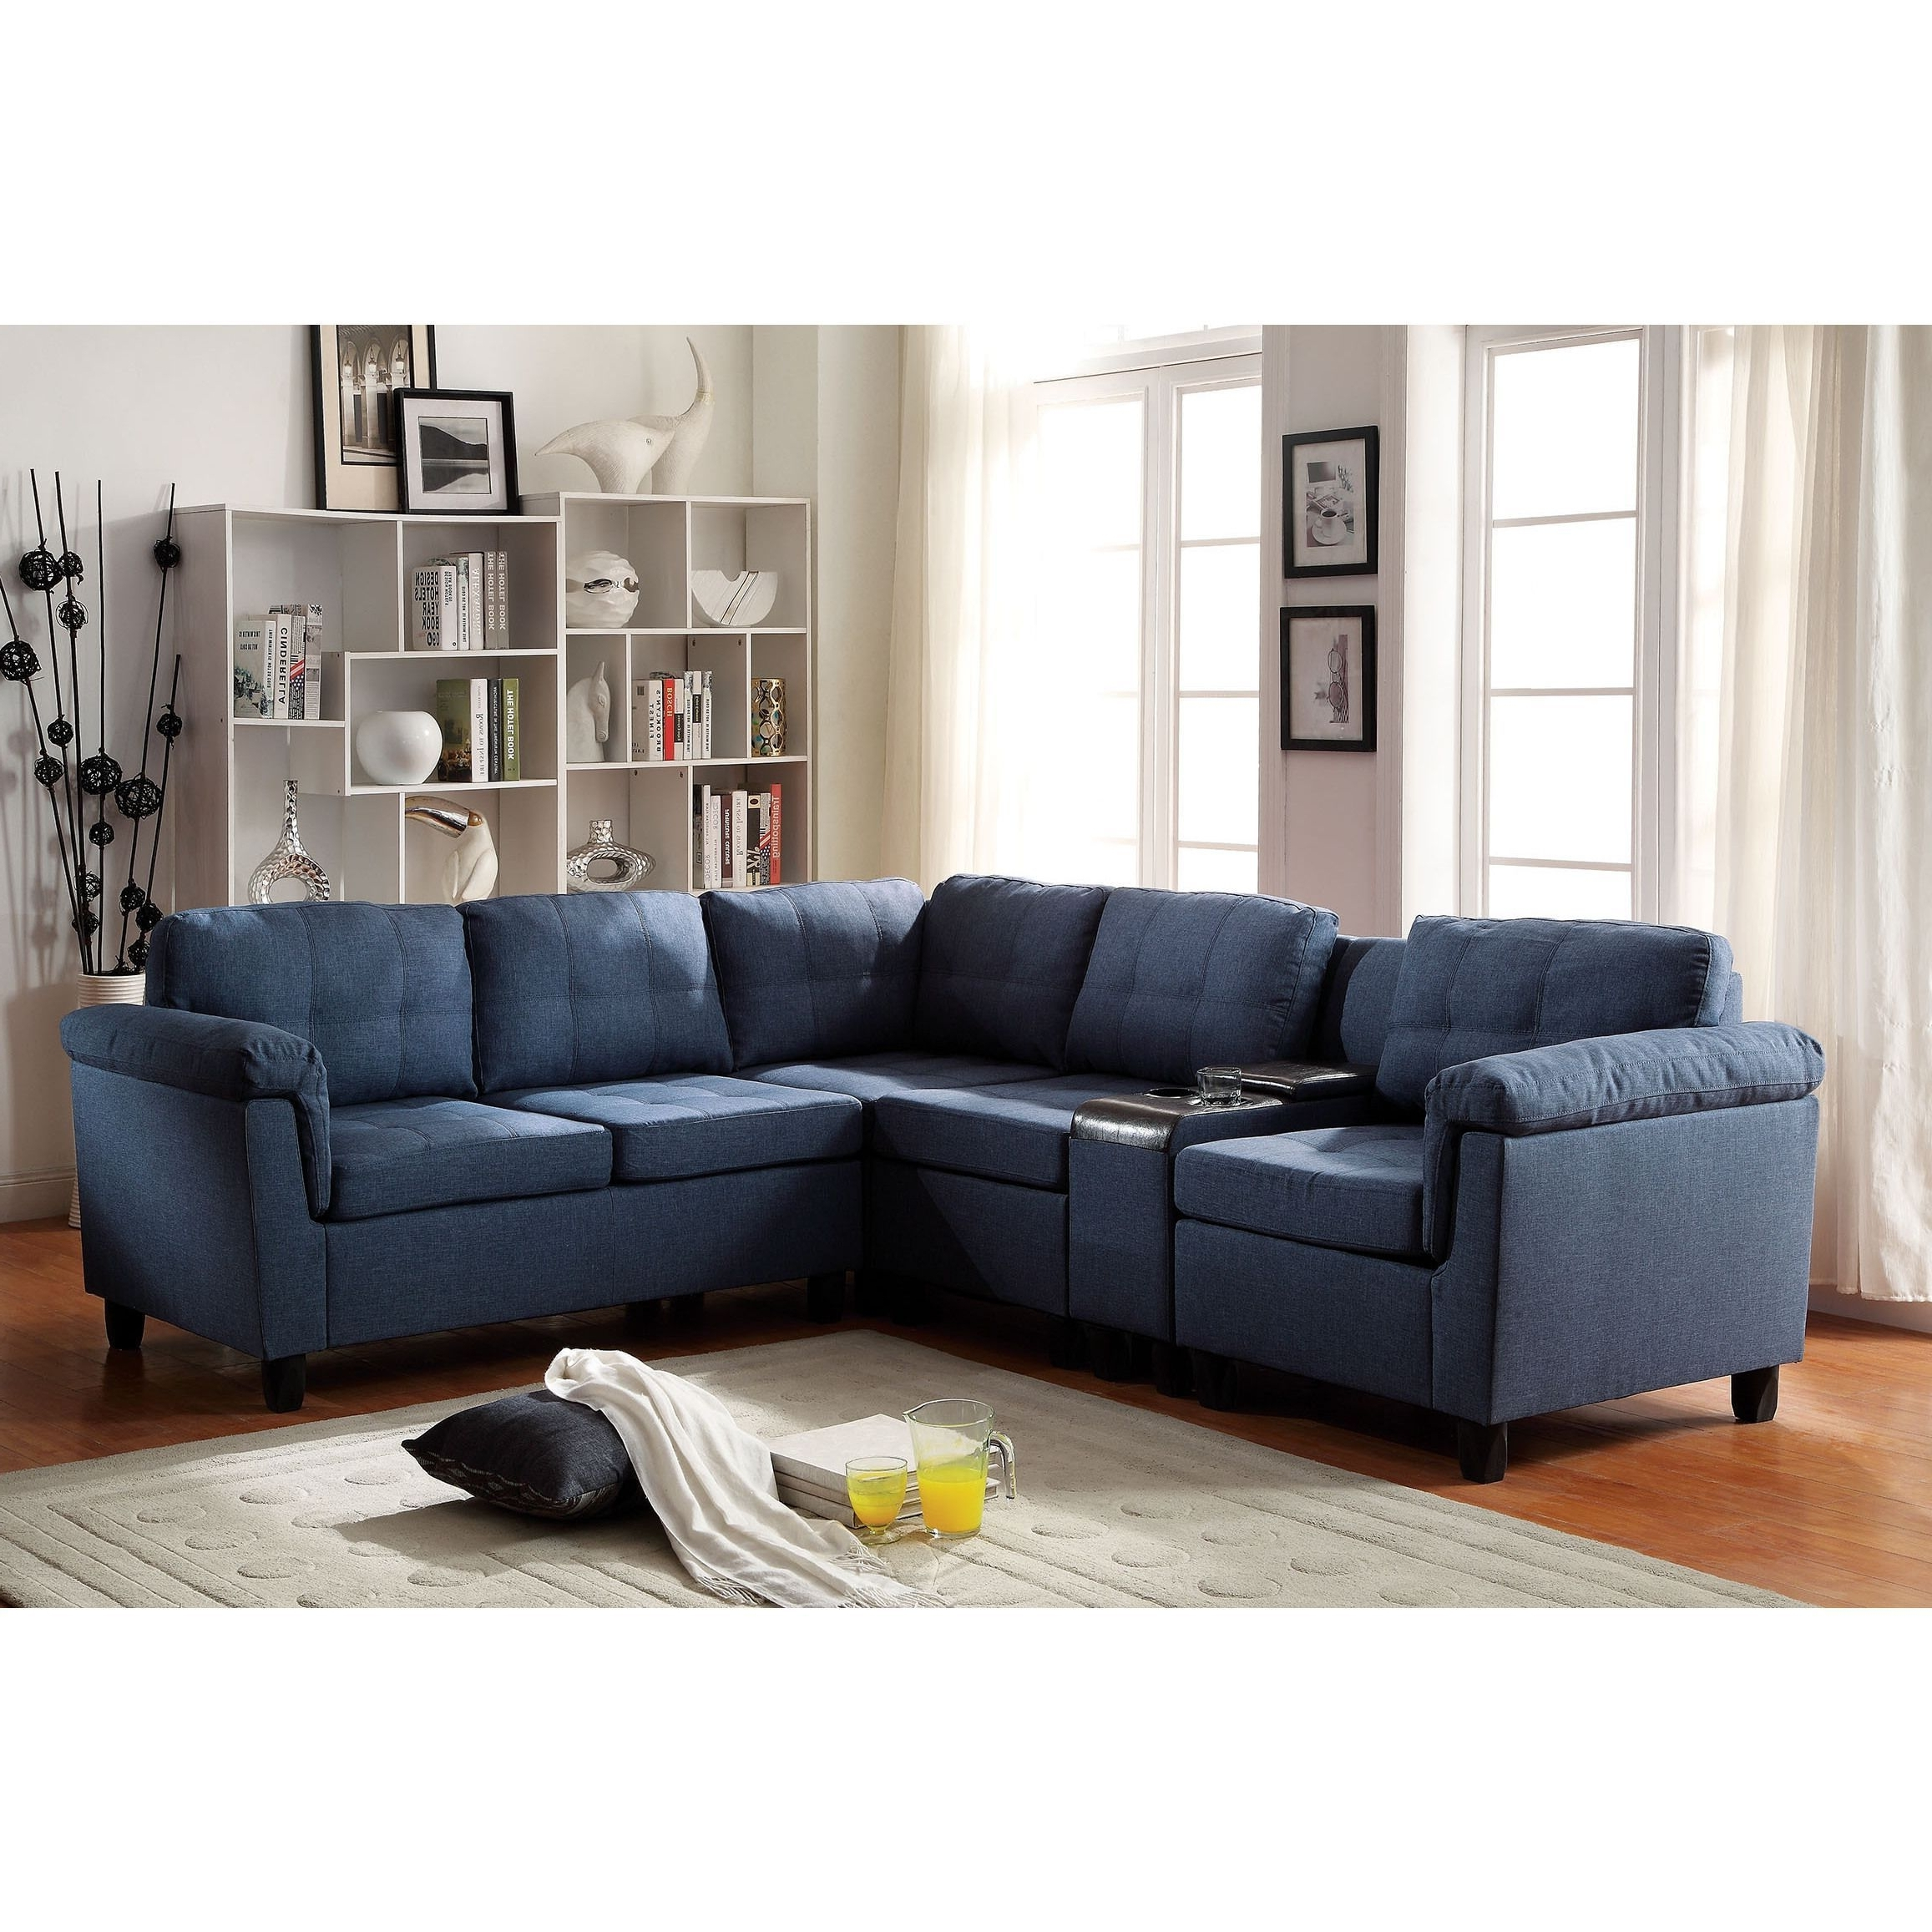 Cleavon Sectional Sofa With Console, Linen (Blue) (Foam Throughout Well Known Eau Claire Wi Sectional Sofas (View 14 of 15)